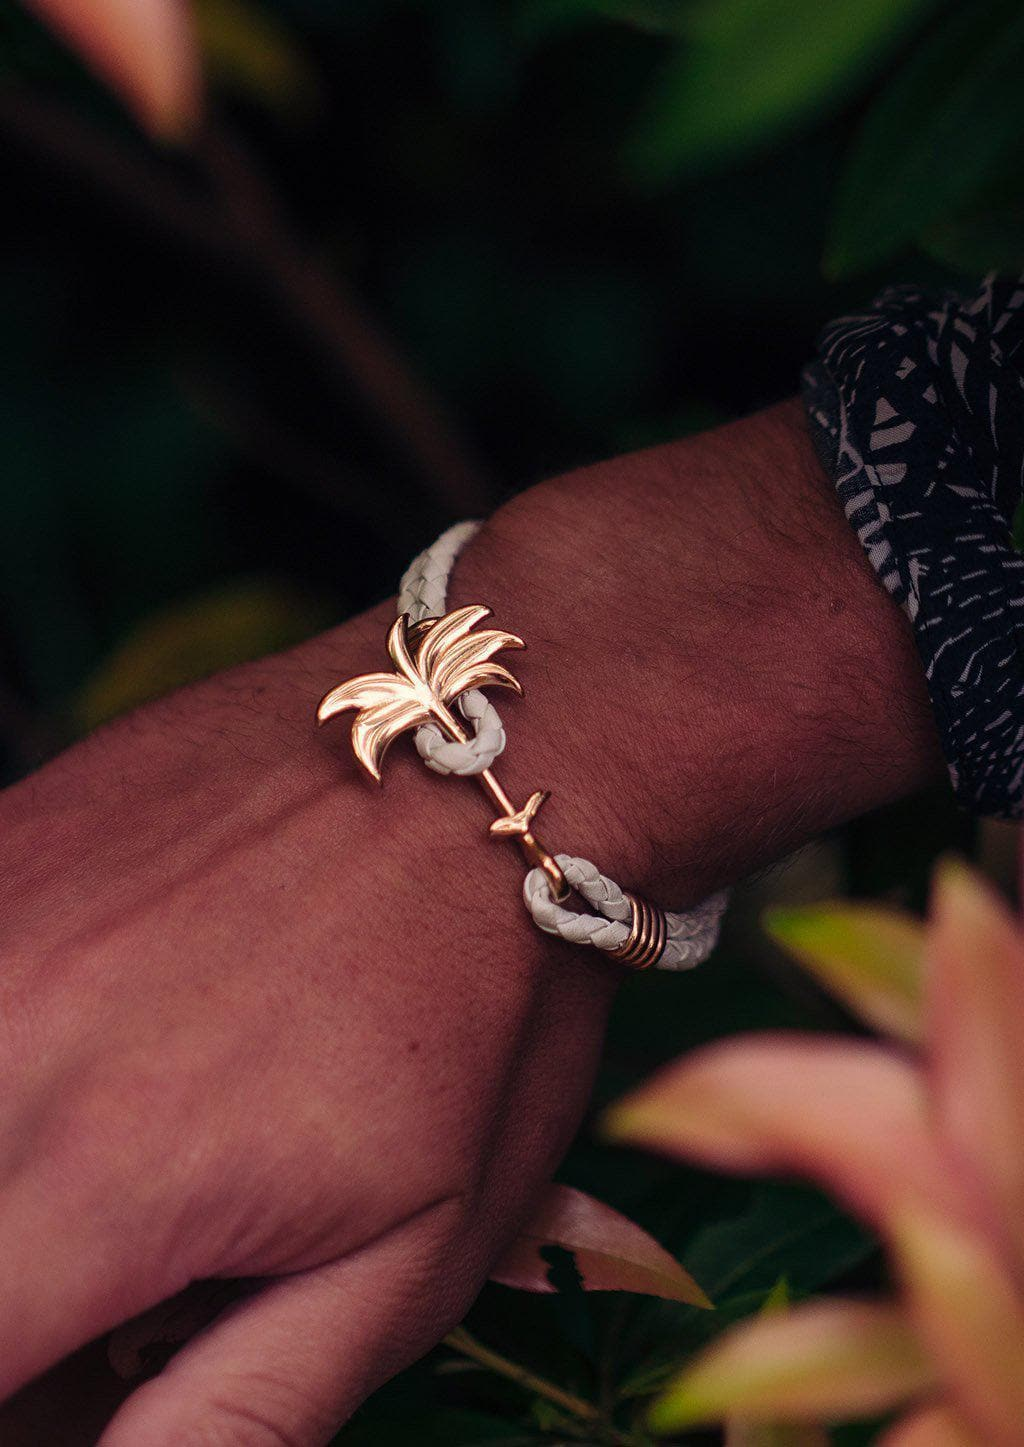 Paradise Rose - Palm anchor bracelet with white leather. On model wrist.